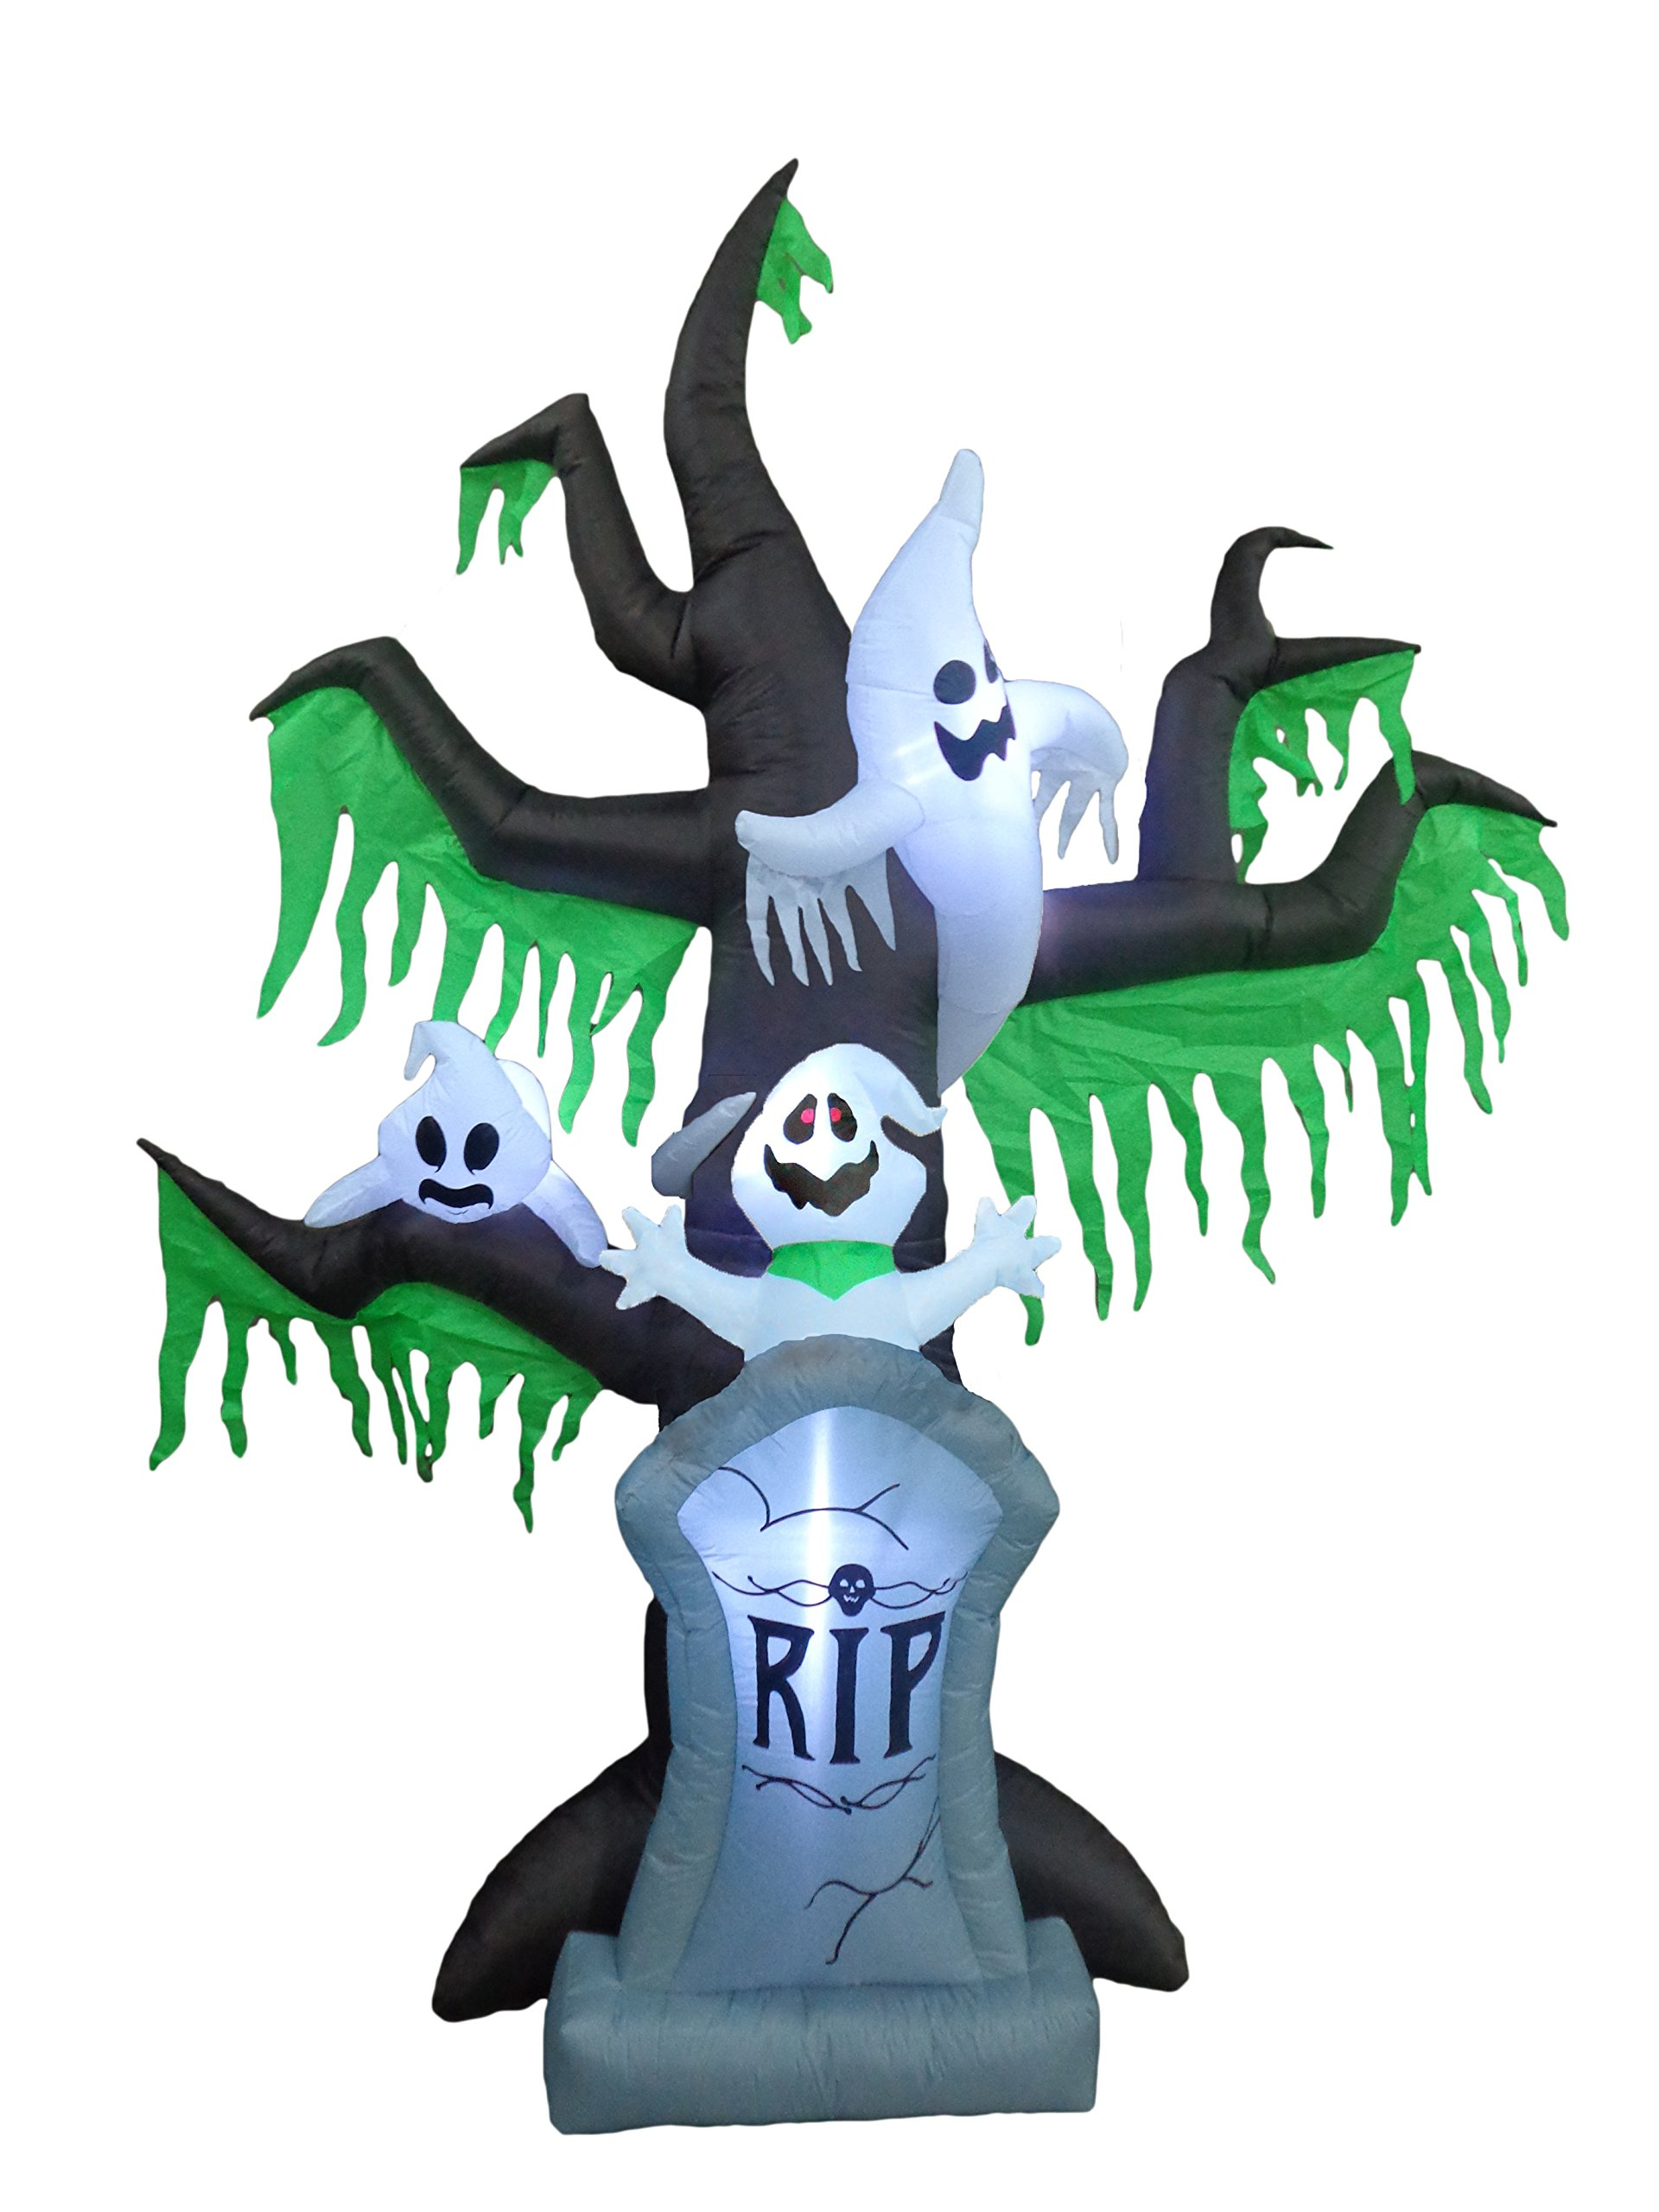 9 Foot Tall Halloween Inflatable Grave Scene Skeletons Ghosts on Dead Tree with Tombstone New Party Decoration